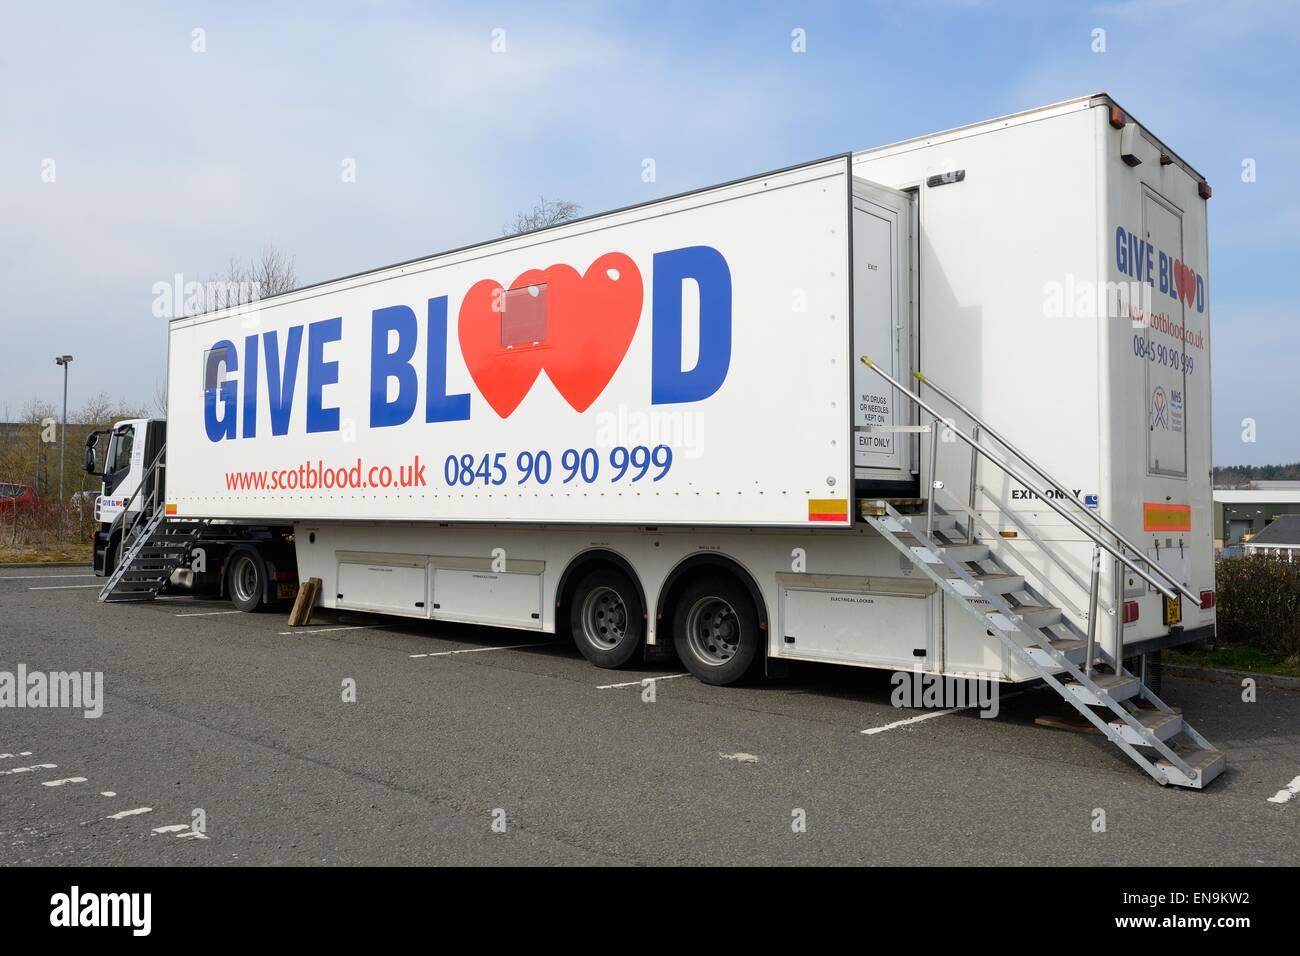 Scotblood mobile blood donation unit in hospital car park in